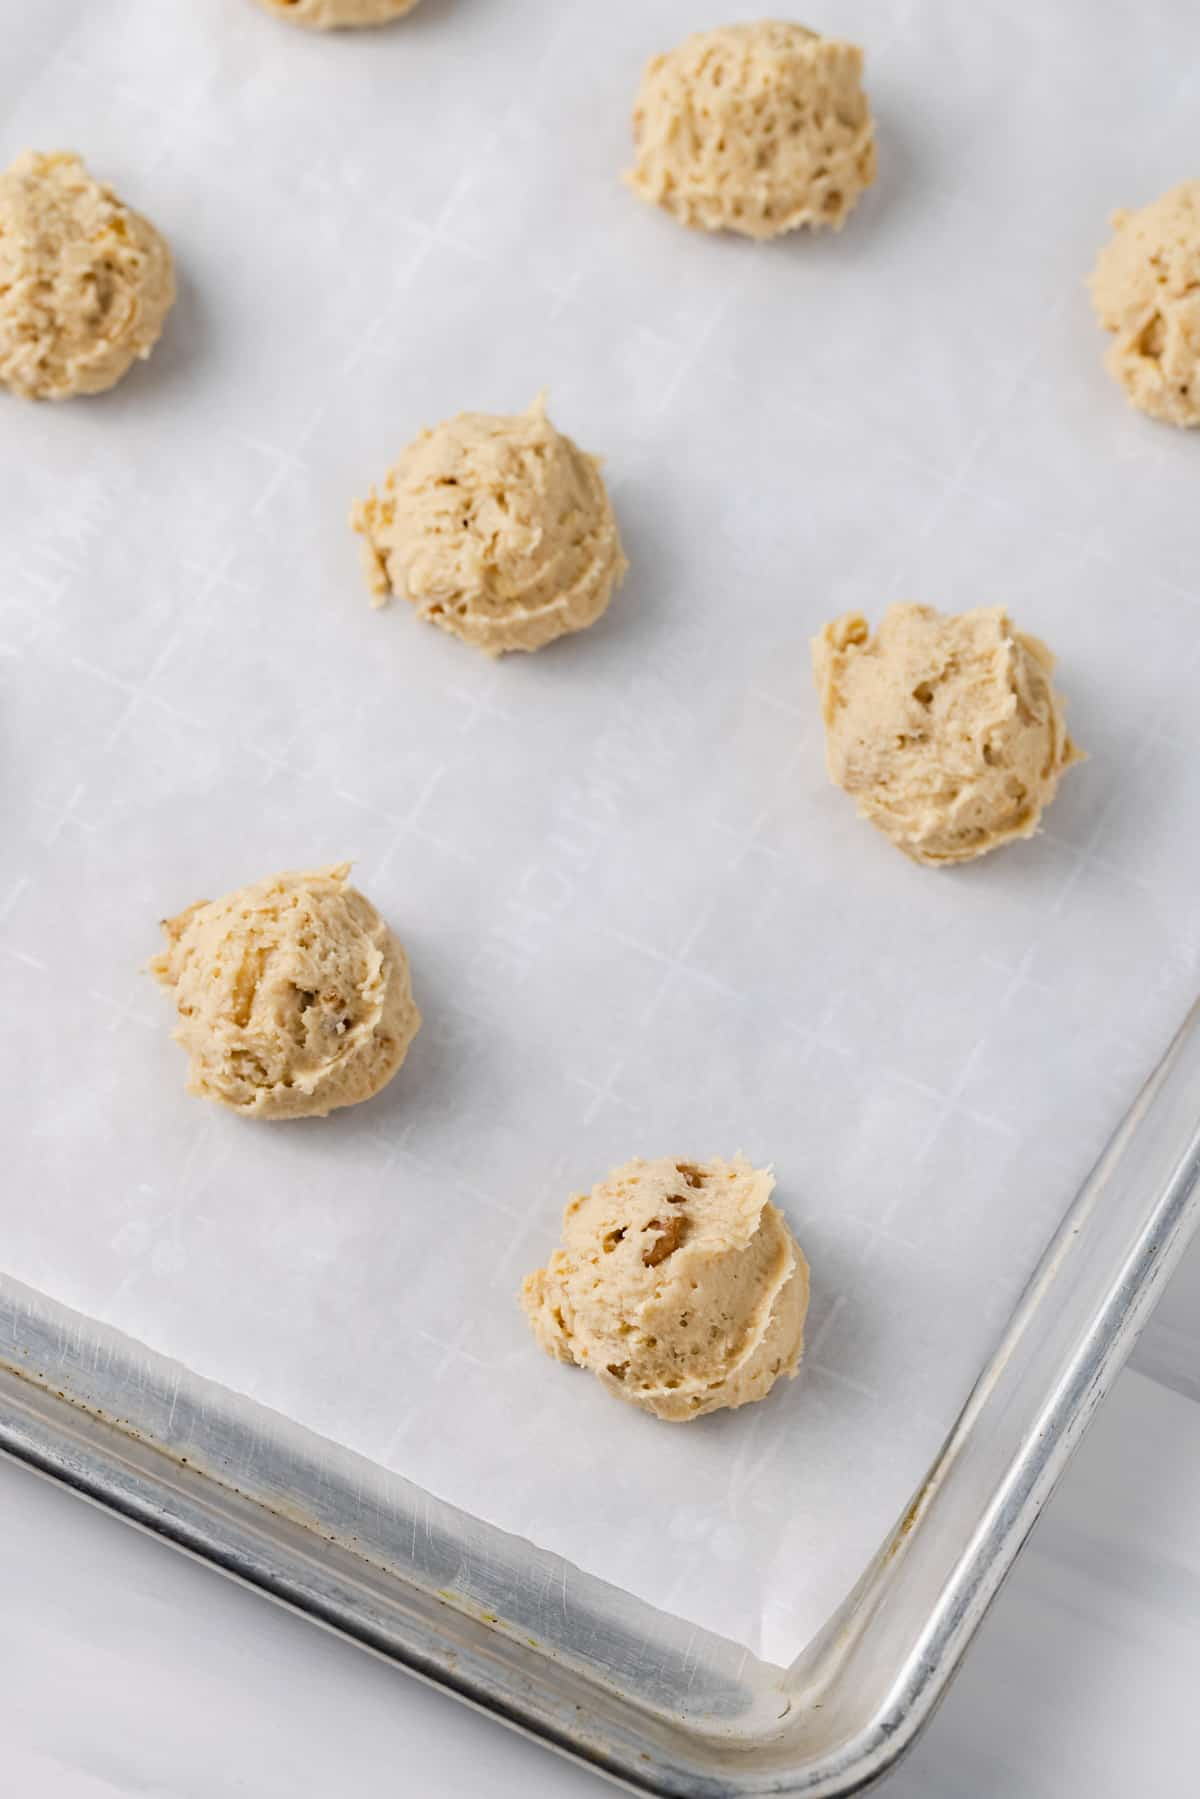 Scoops of banana bread cookie dough on a baking sheet